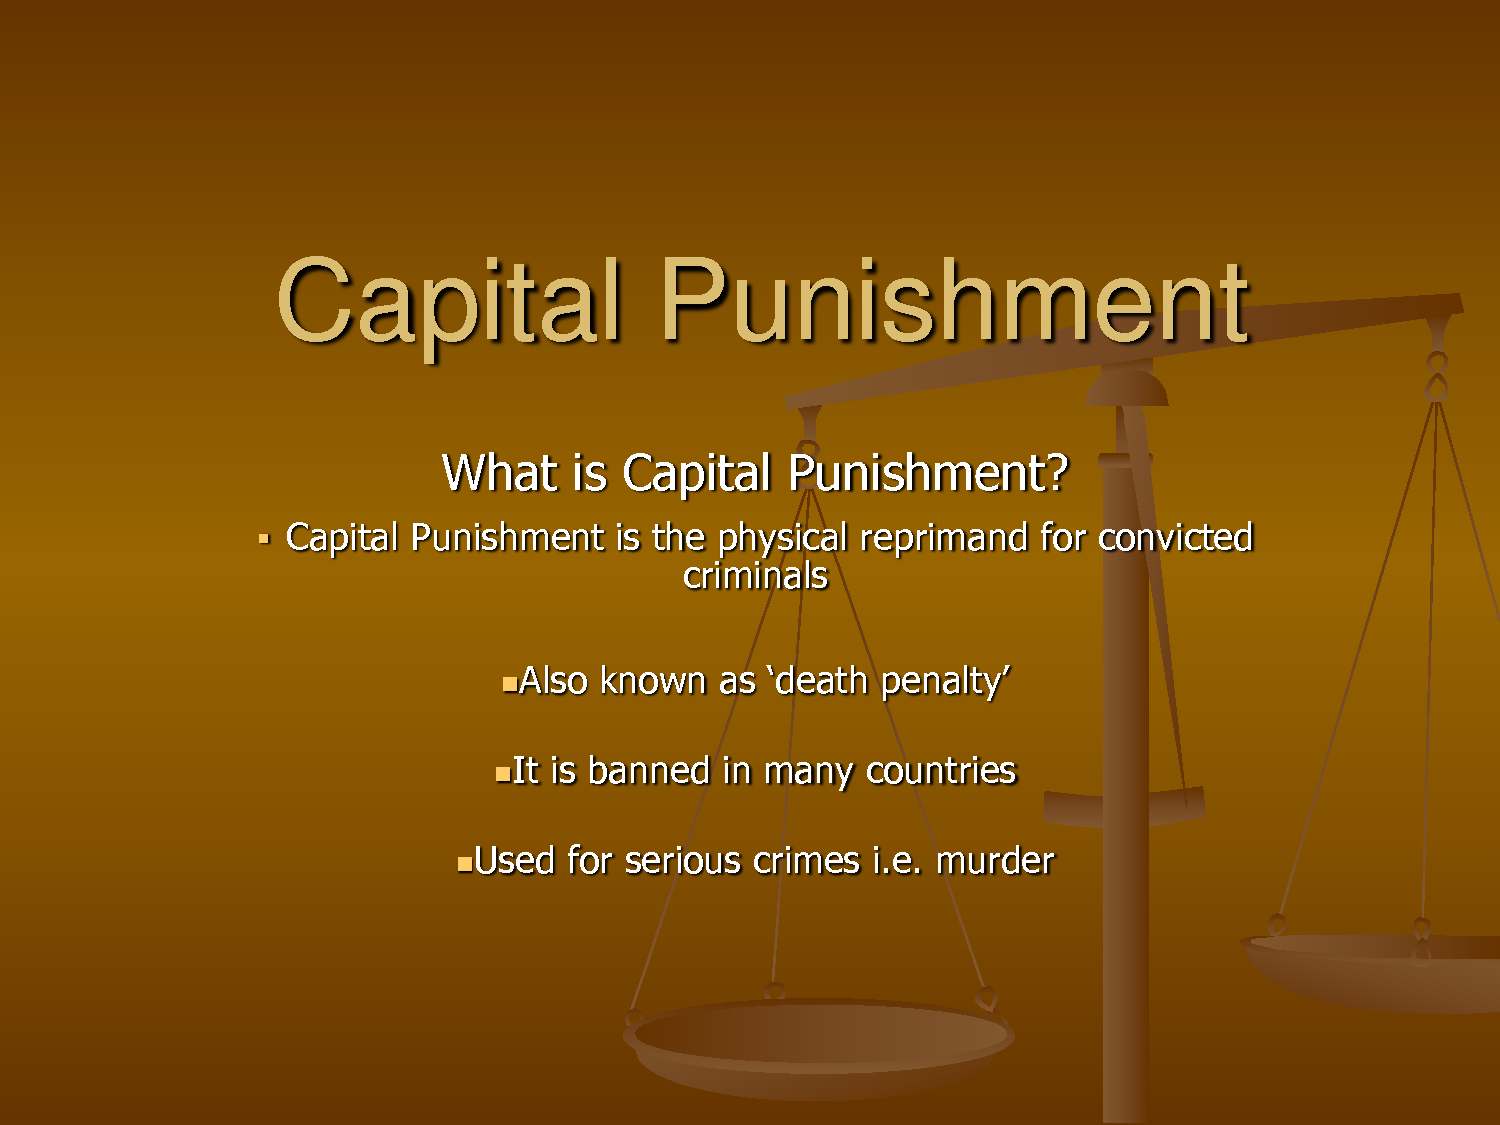 persuasive essays against capital punishment Capital punishment essay: benefits of the death penalty argumentative persuasive essays]:: 5 works cited : pro capital punishment essays] 1542 words (44.